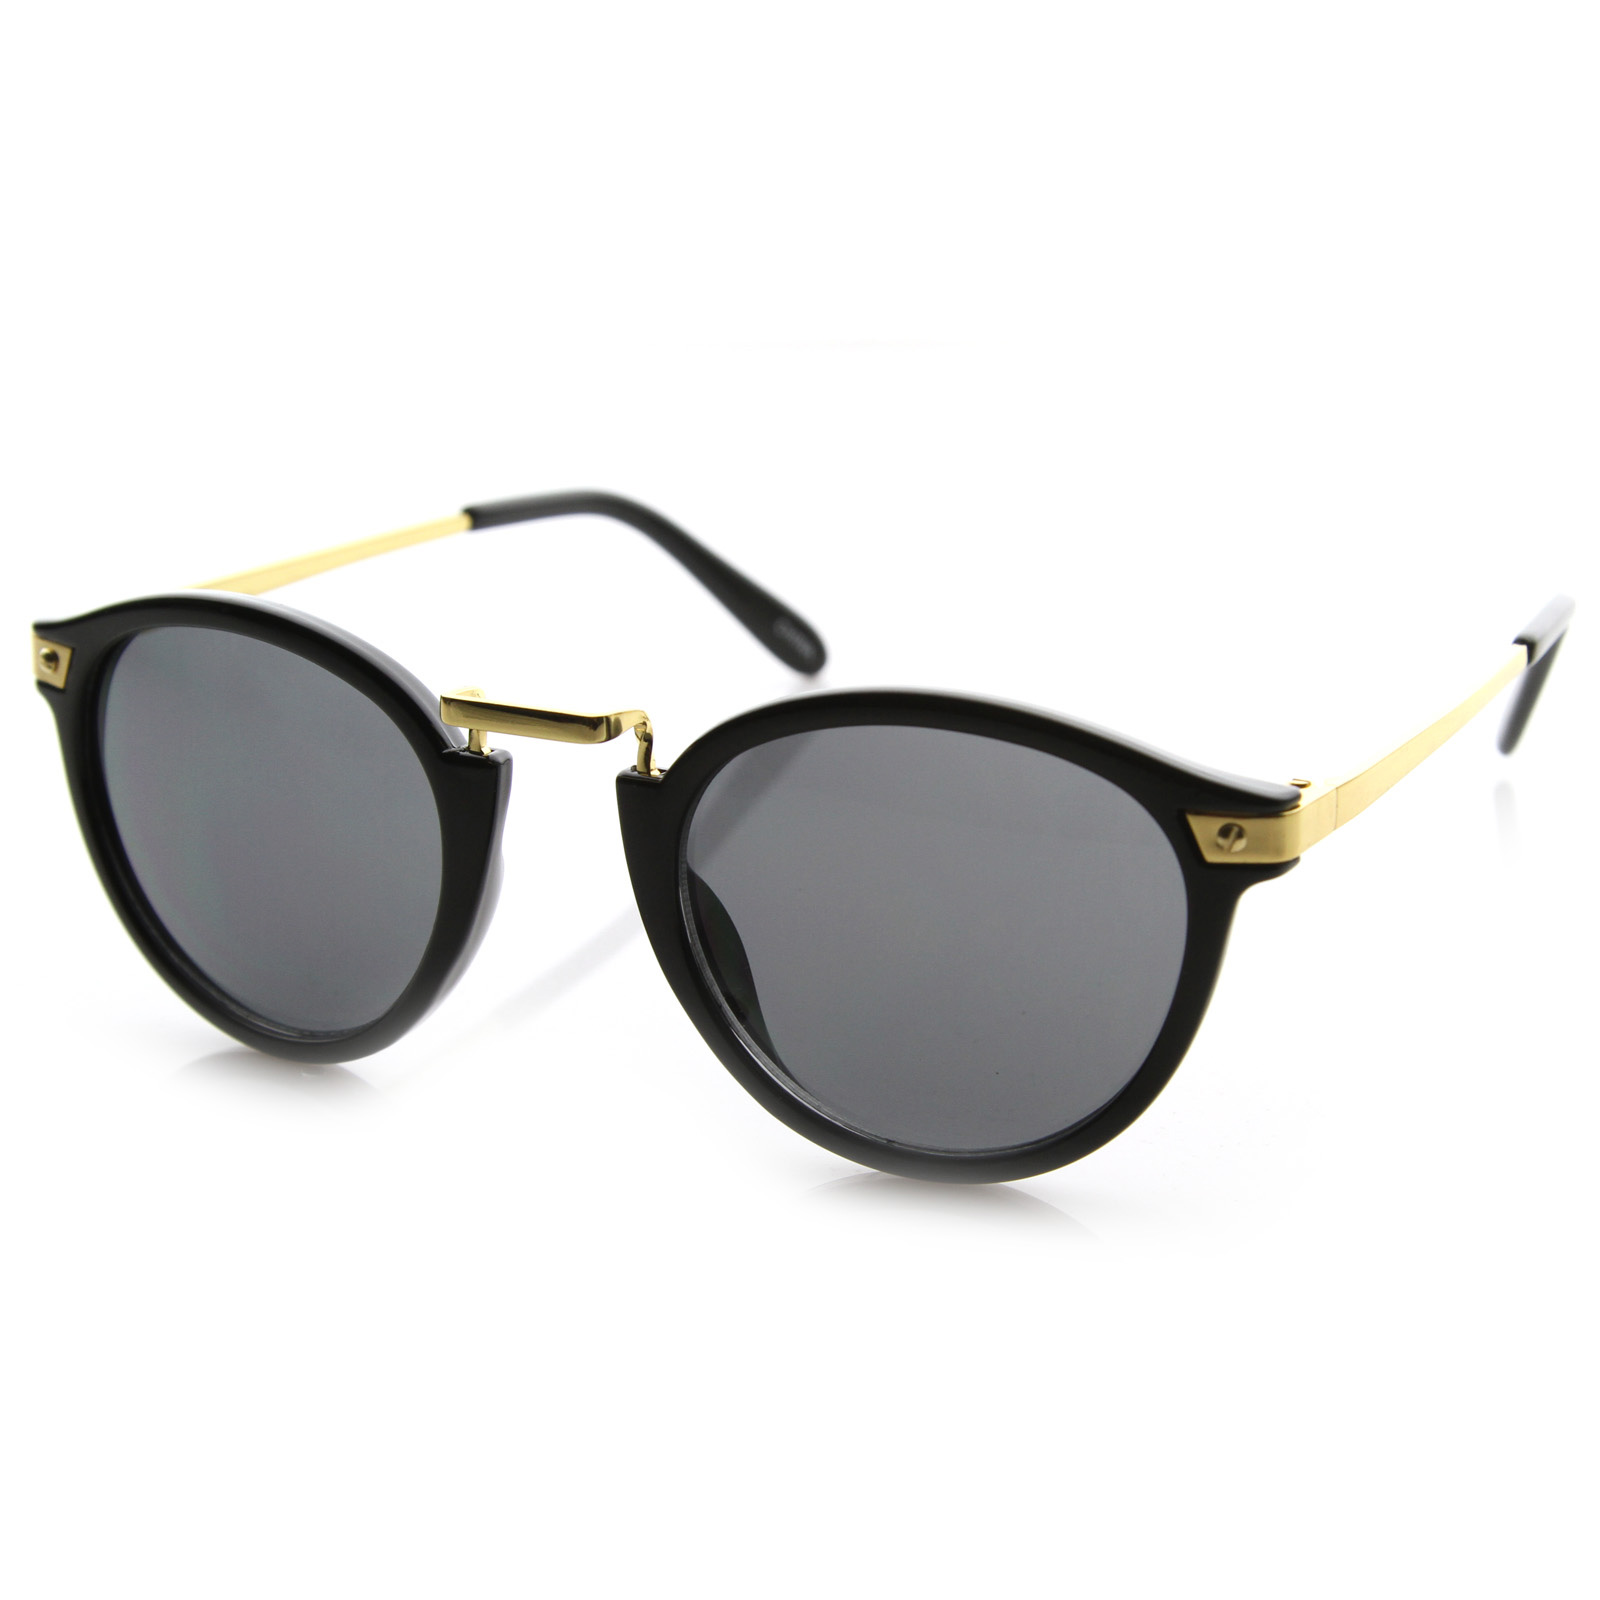 Up the cool factor with retro sunglasses from Unique Vintage, where we've got a broad selection of unique shades that complement any cool style. We offer affordable sunglasses .